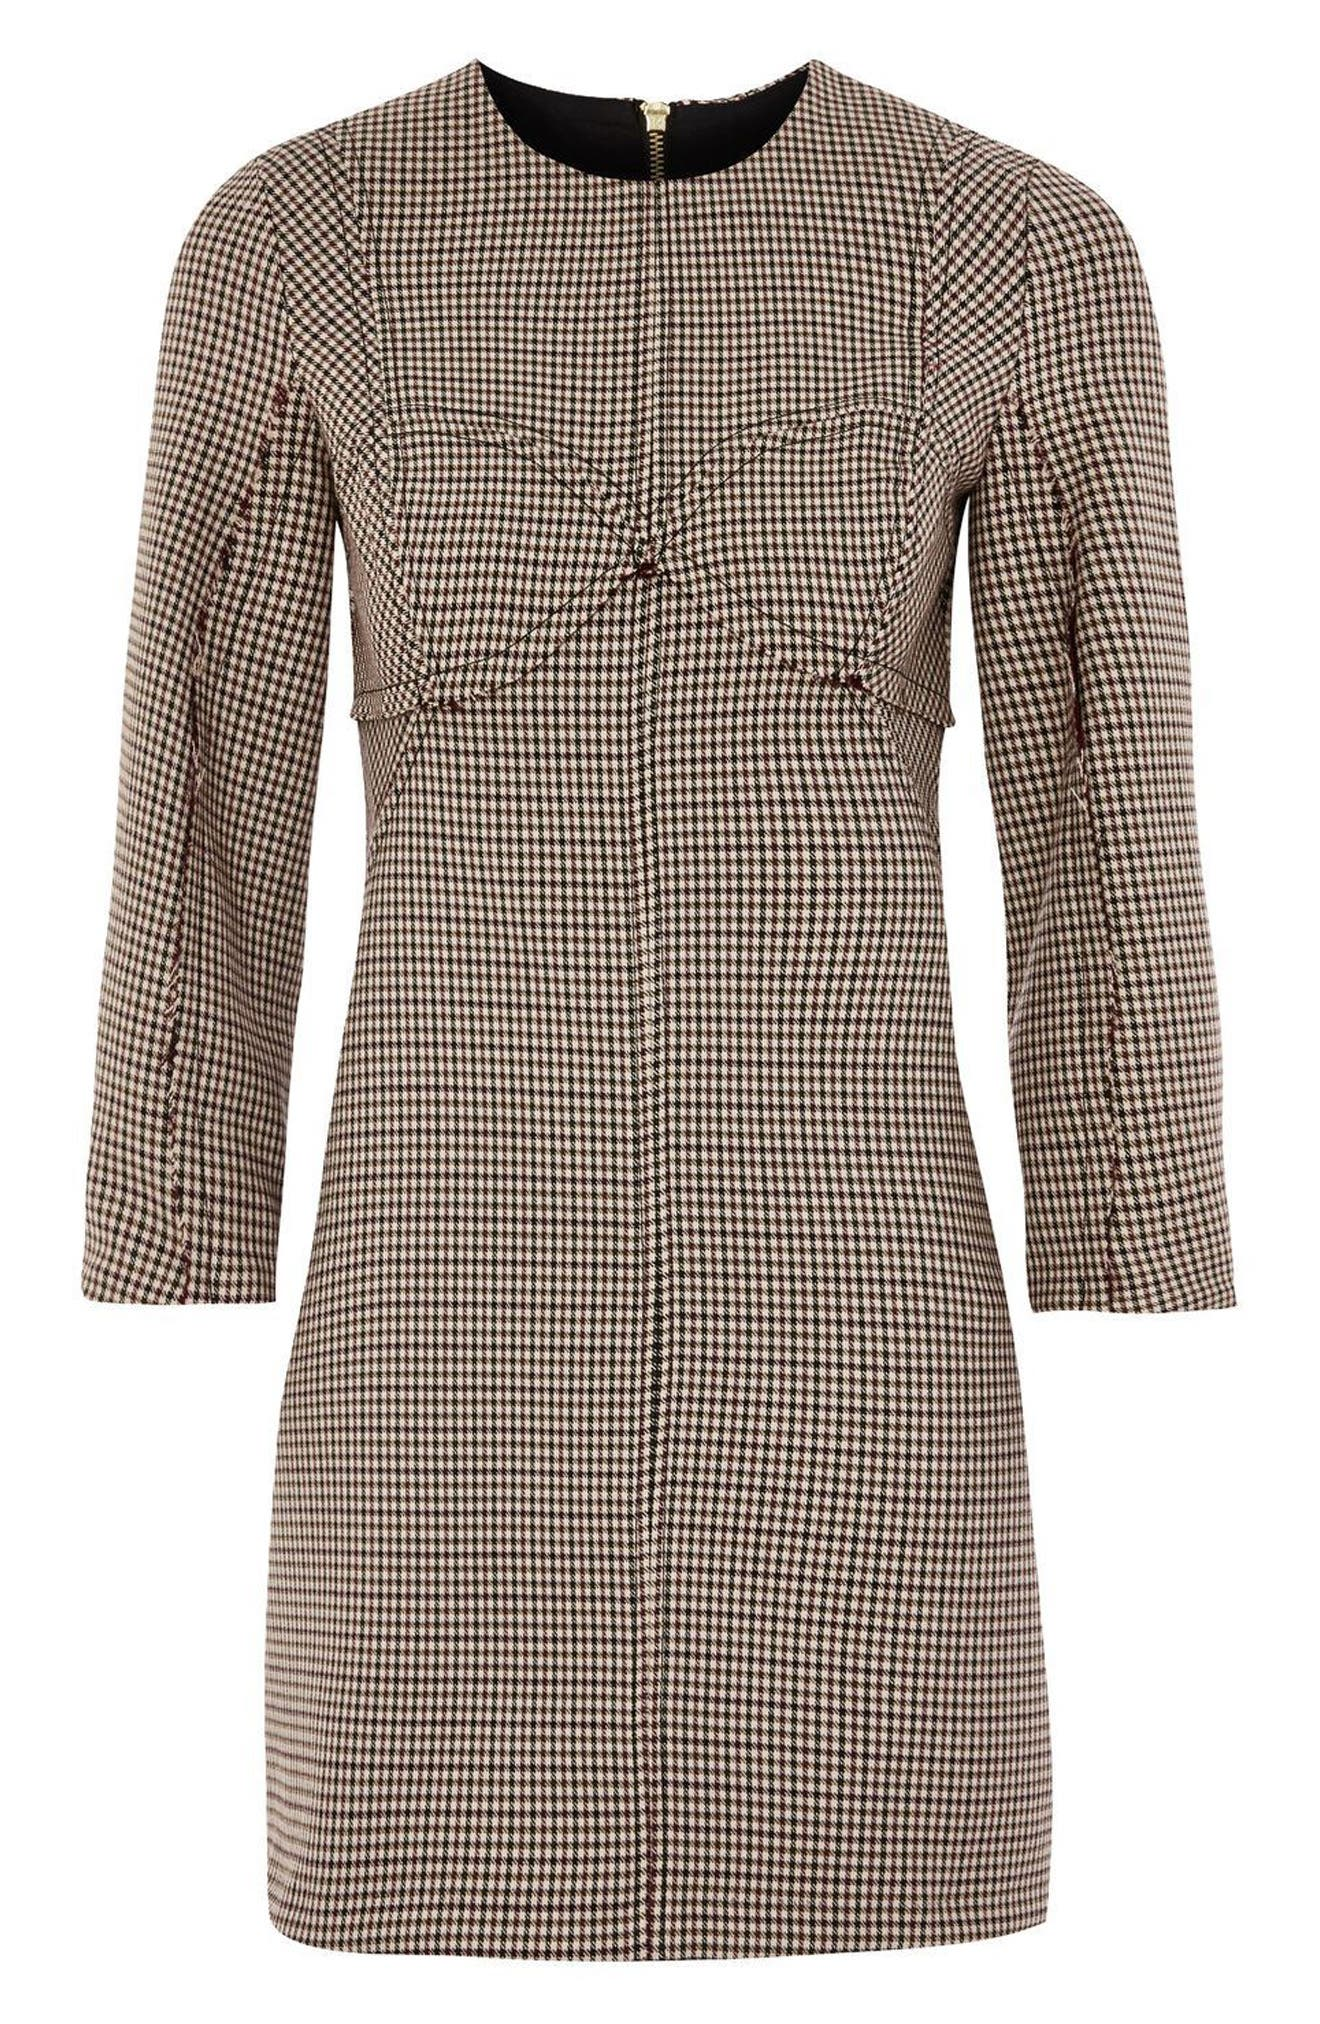 Alternate Image 4  - Topshop Topstitch Check Shift Dress